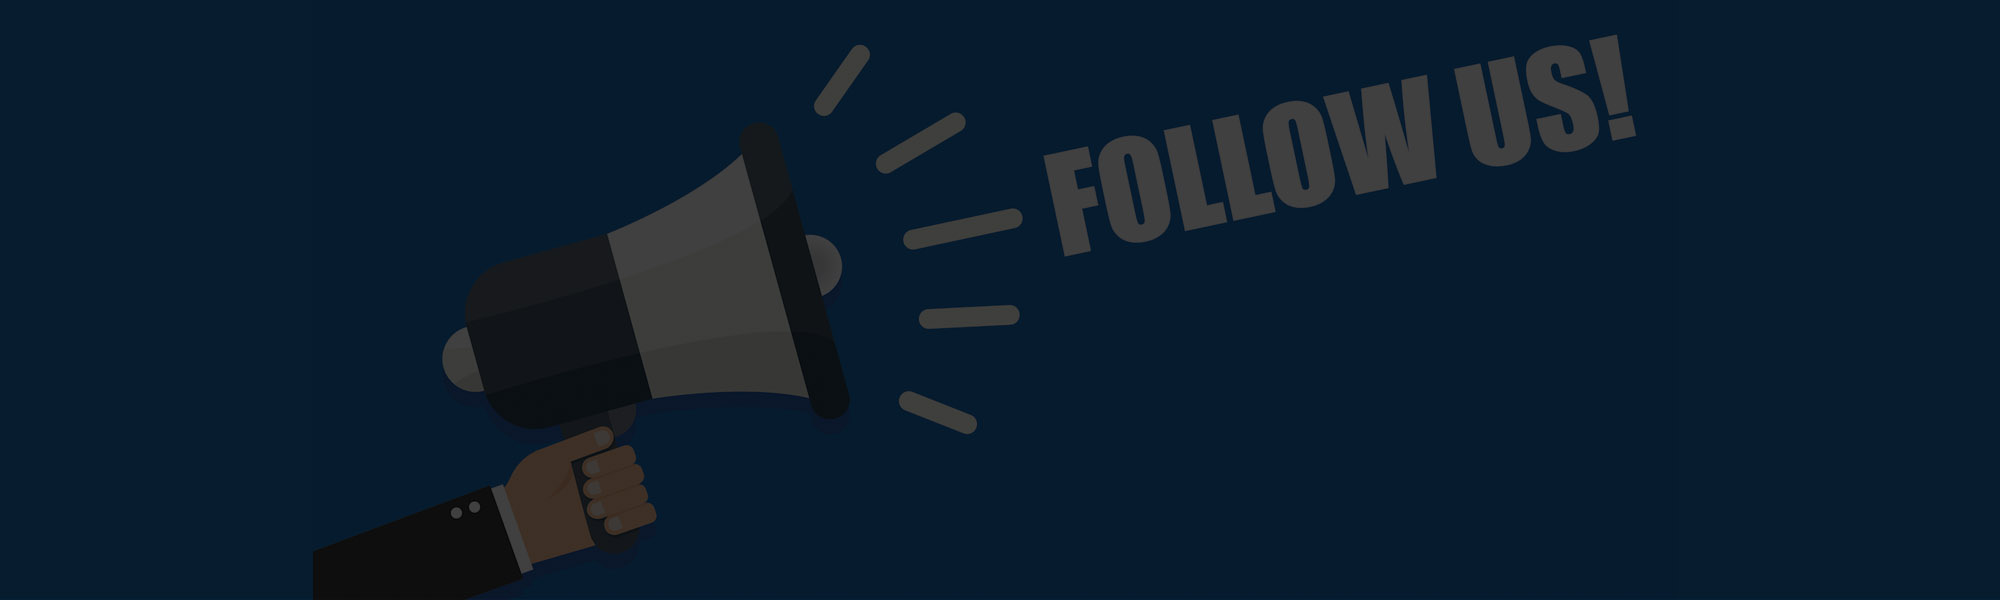 How to get 500 real, targeted followers on Facebook fast